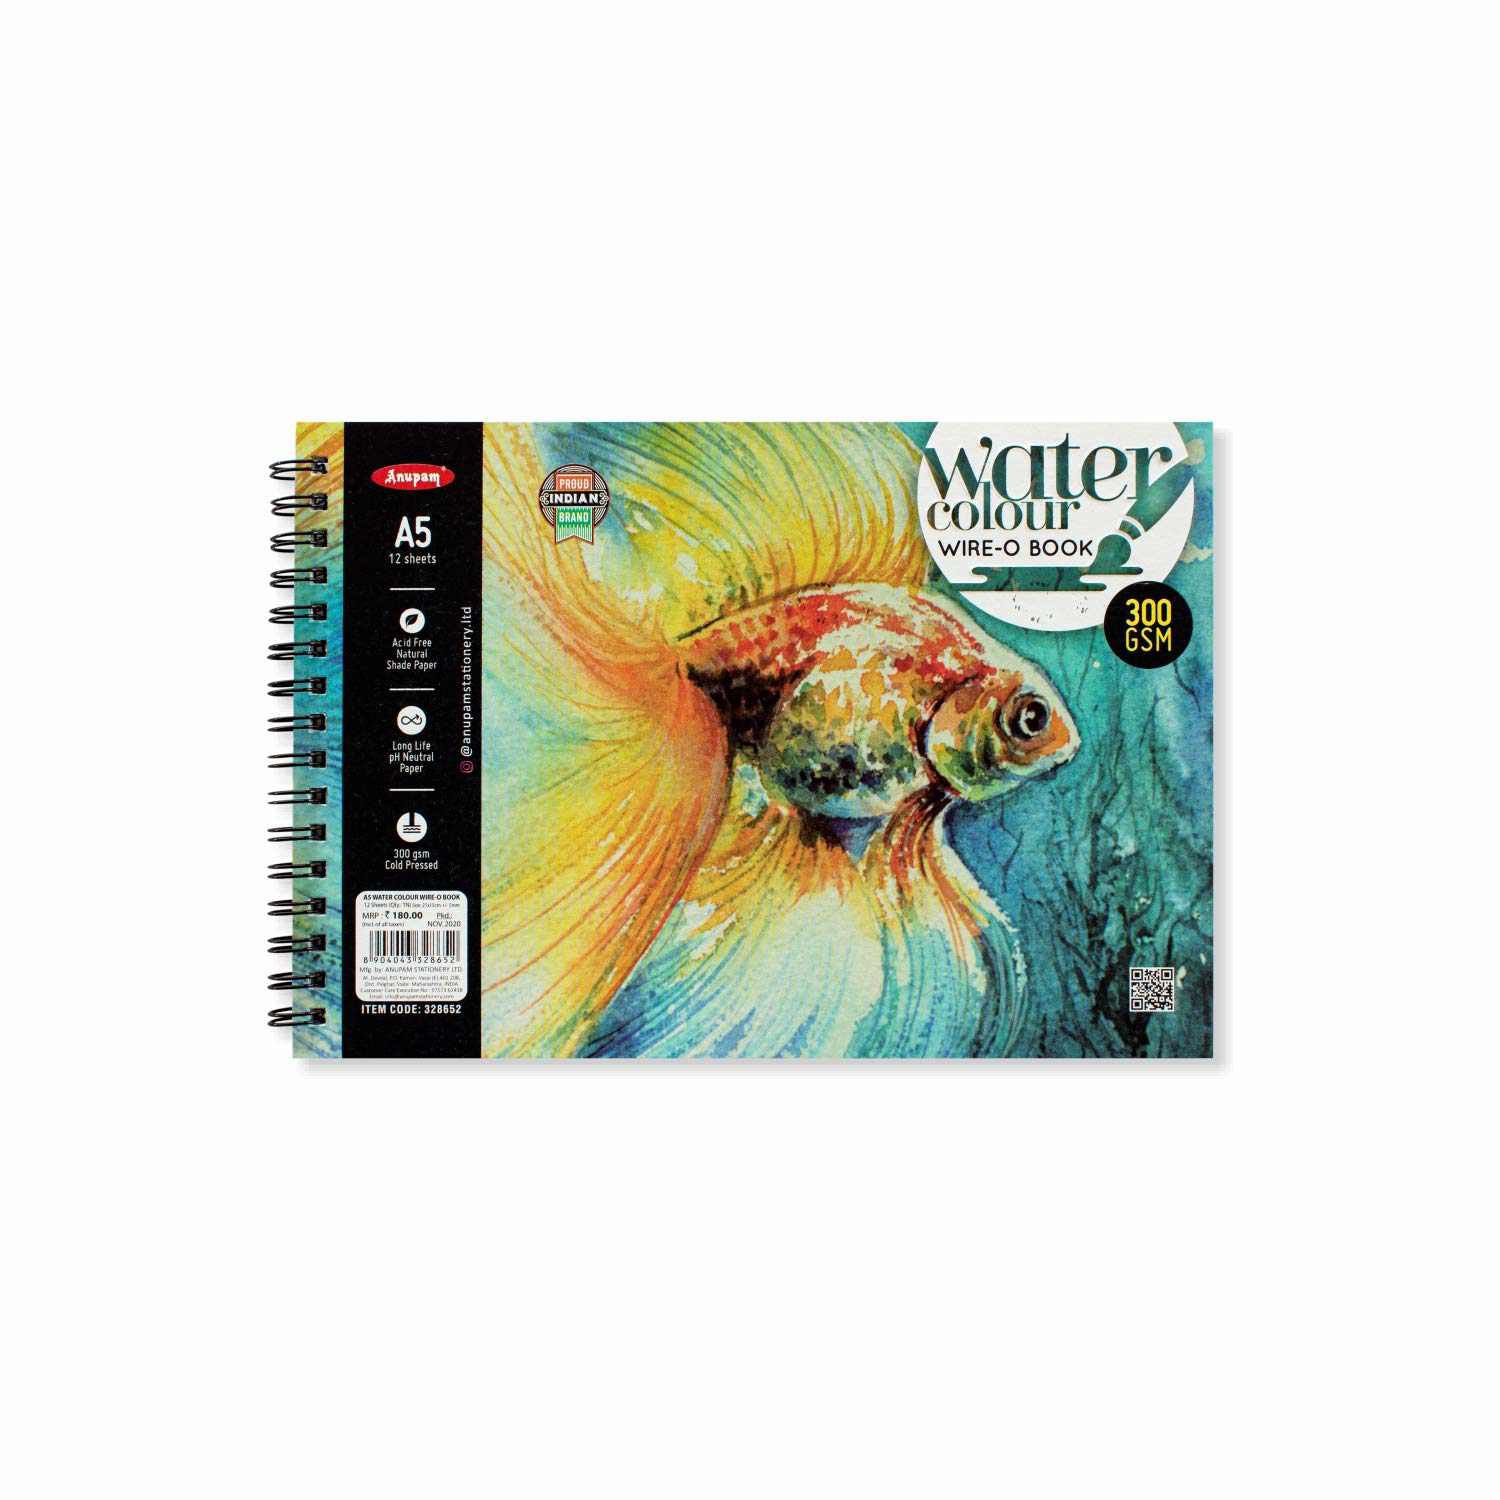 Anupam Water Colour Wire-O Book A5 300Gsm 12 Sheets